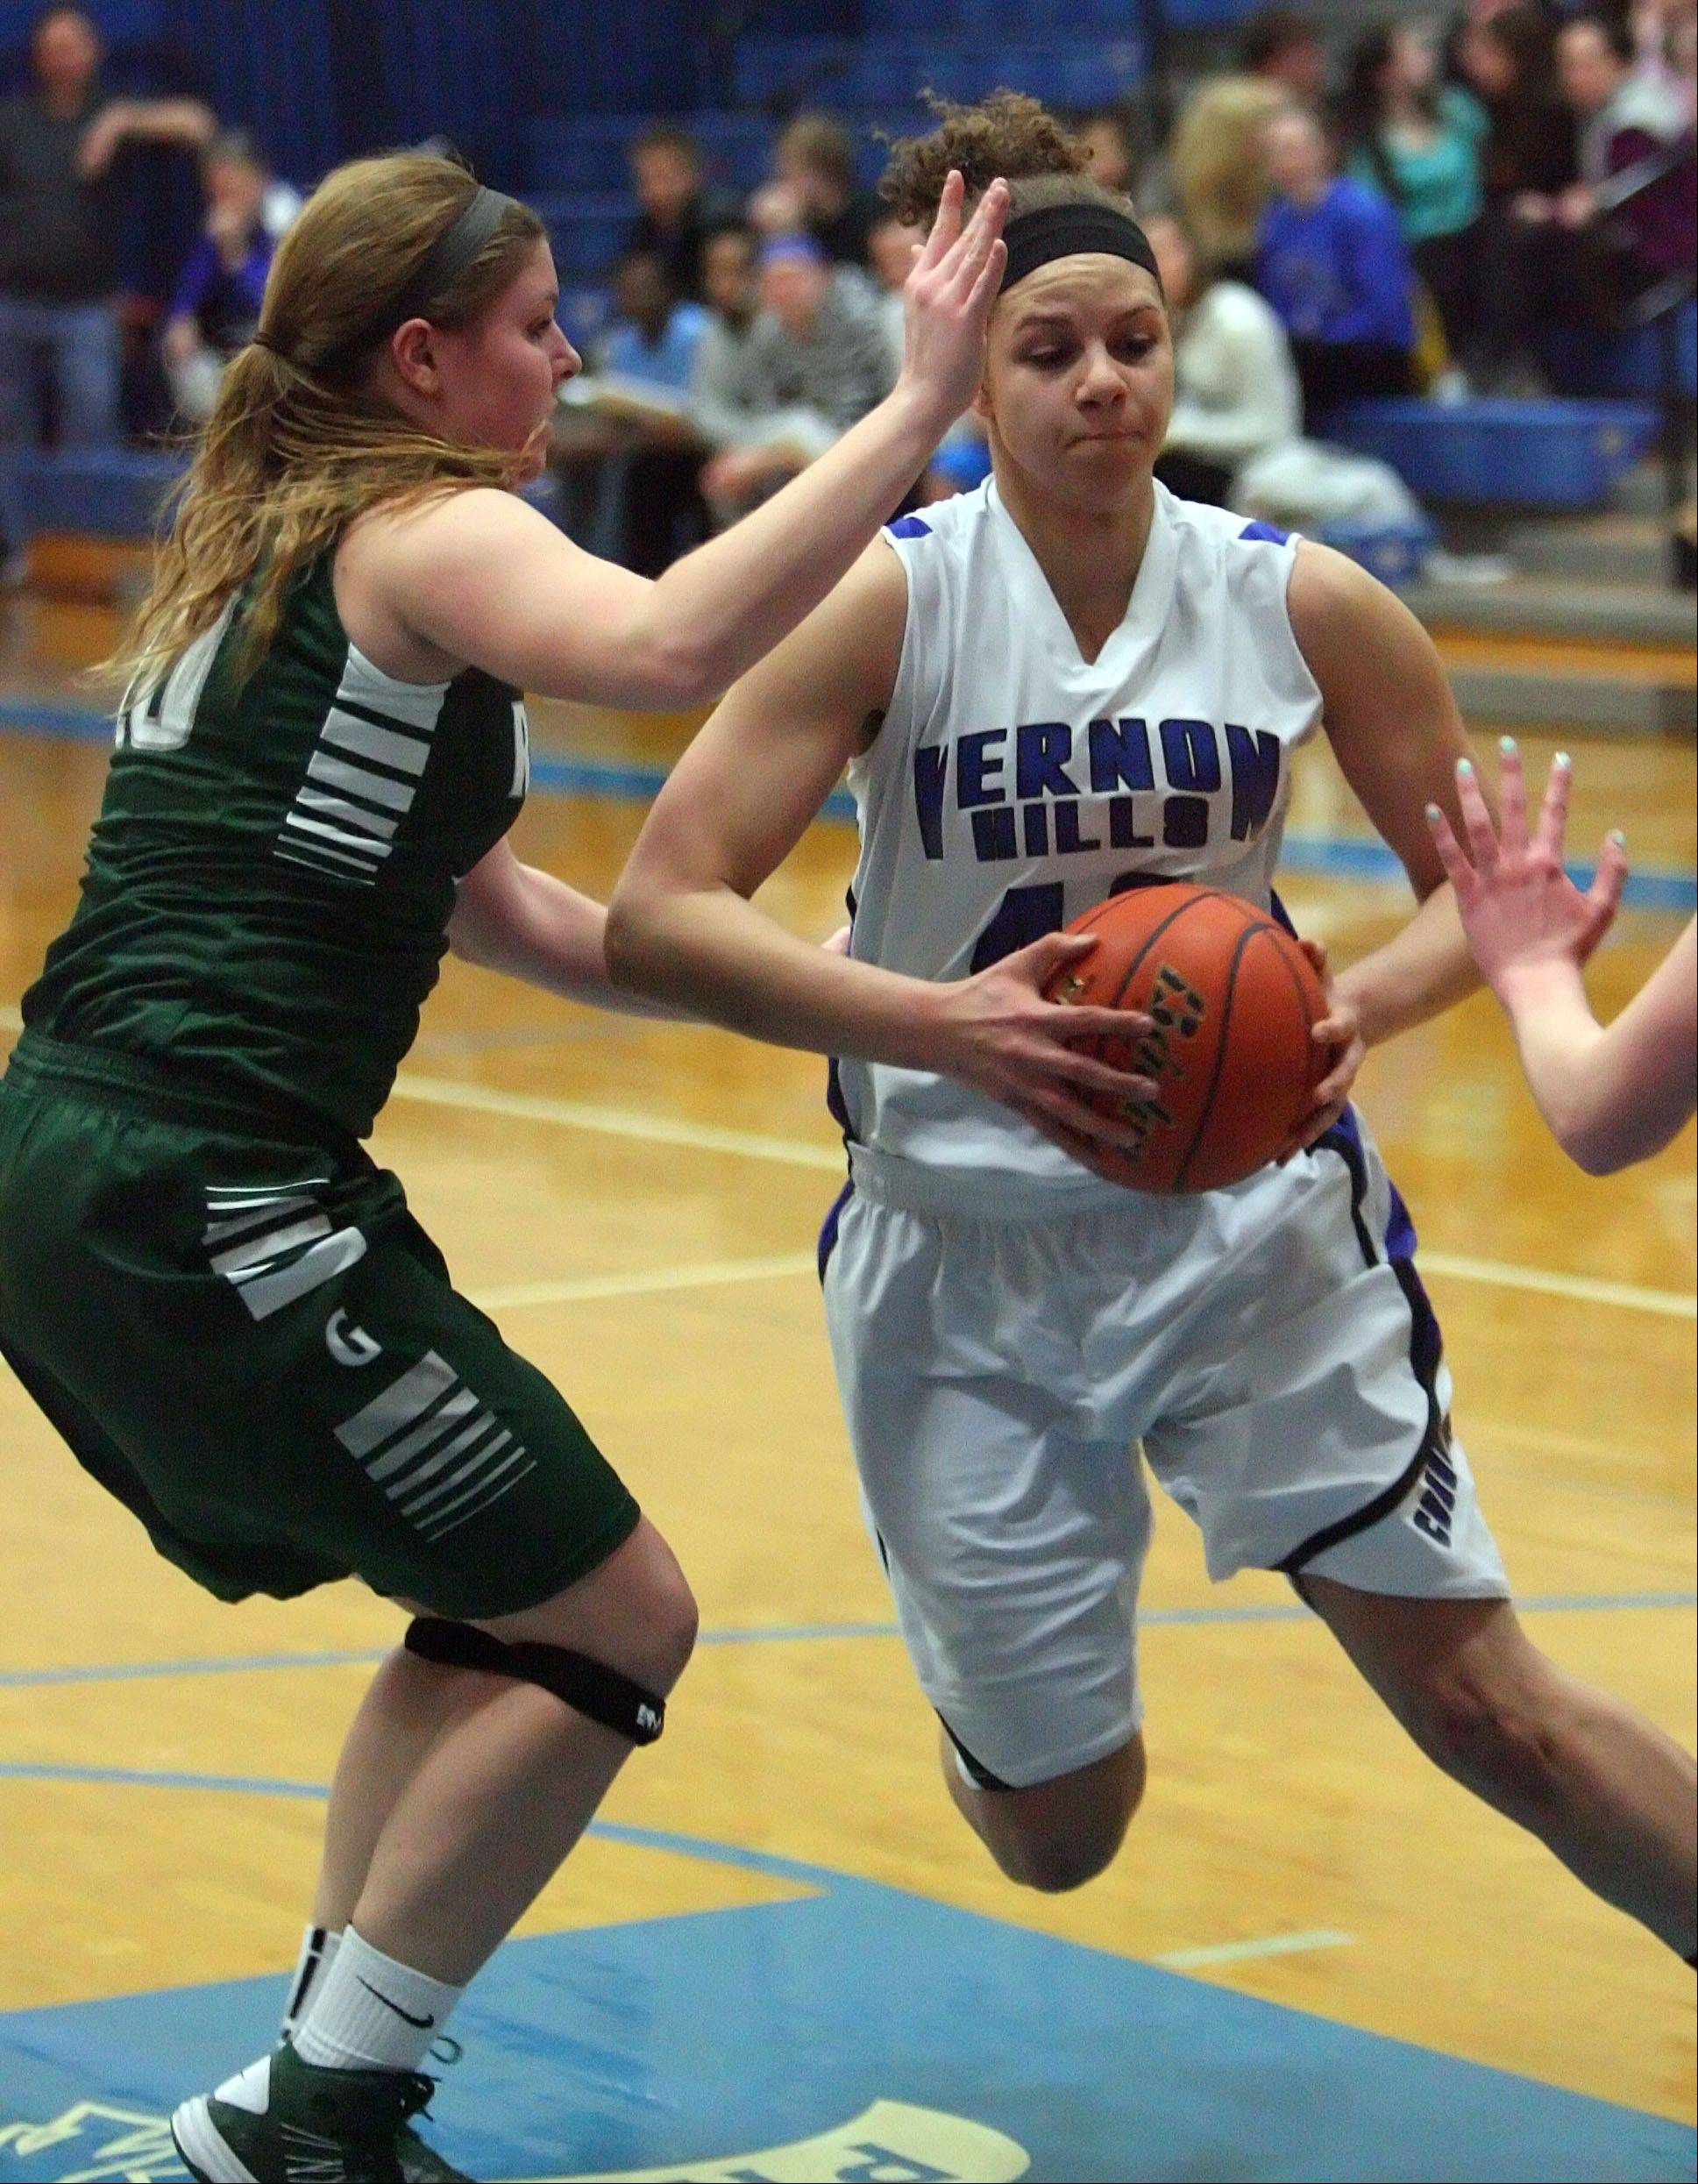 Vernon Hills' Lauren Webb, right, drives on Grayslake Central's Maddy Miller during Class 3A girls basketball sectional semifinal play at Vernon Hills on Tuesday.